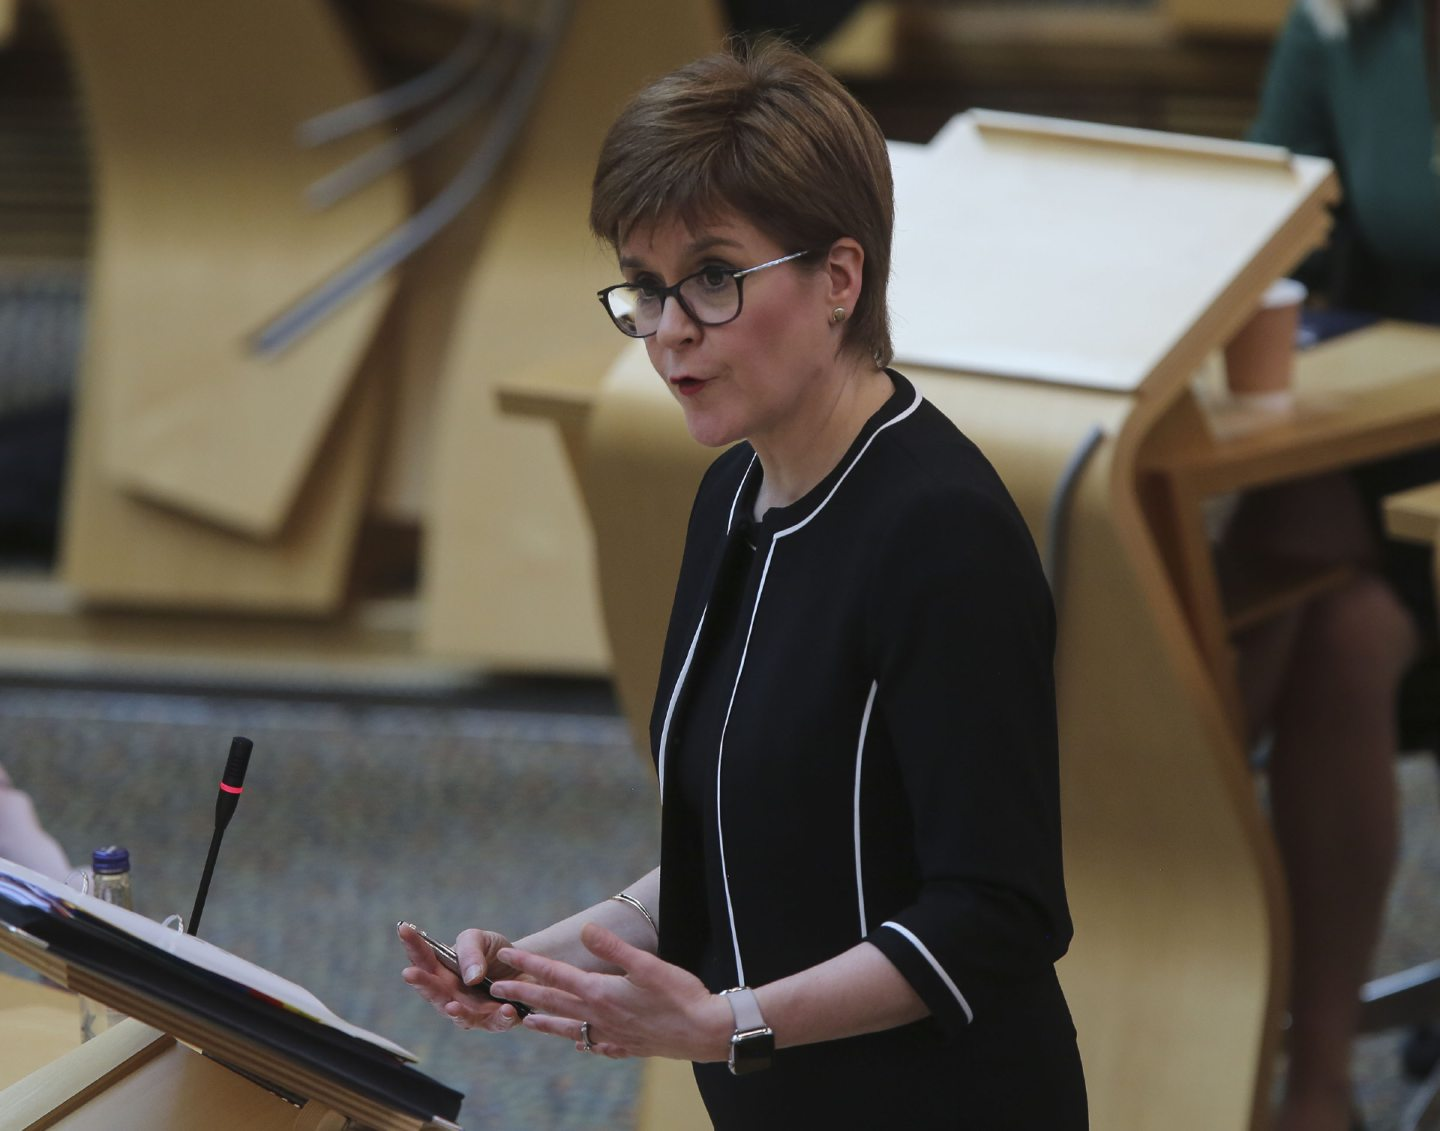 First Minister Nicola Sturgeon during First Minister's Questions held at the Scottish Parliament, Holyrood, Edinburgh. PA Photo. Picture date: Wednesday May 20, 2020. See PA story HEALTH CoronavirusScotland. Photo credit should read: Fraser Bremner/Scottish Daily Mail/PA Wire